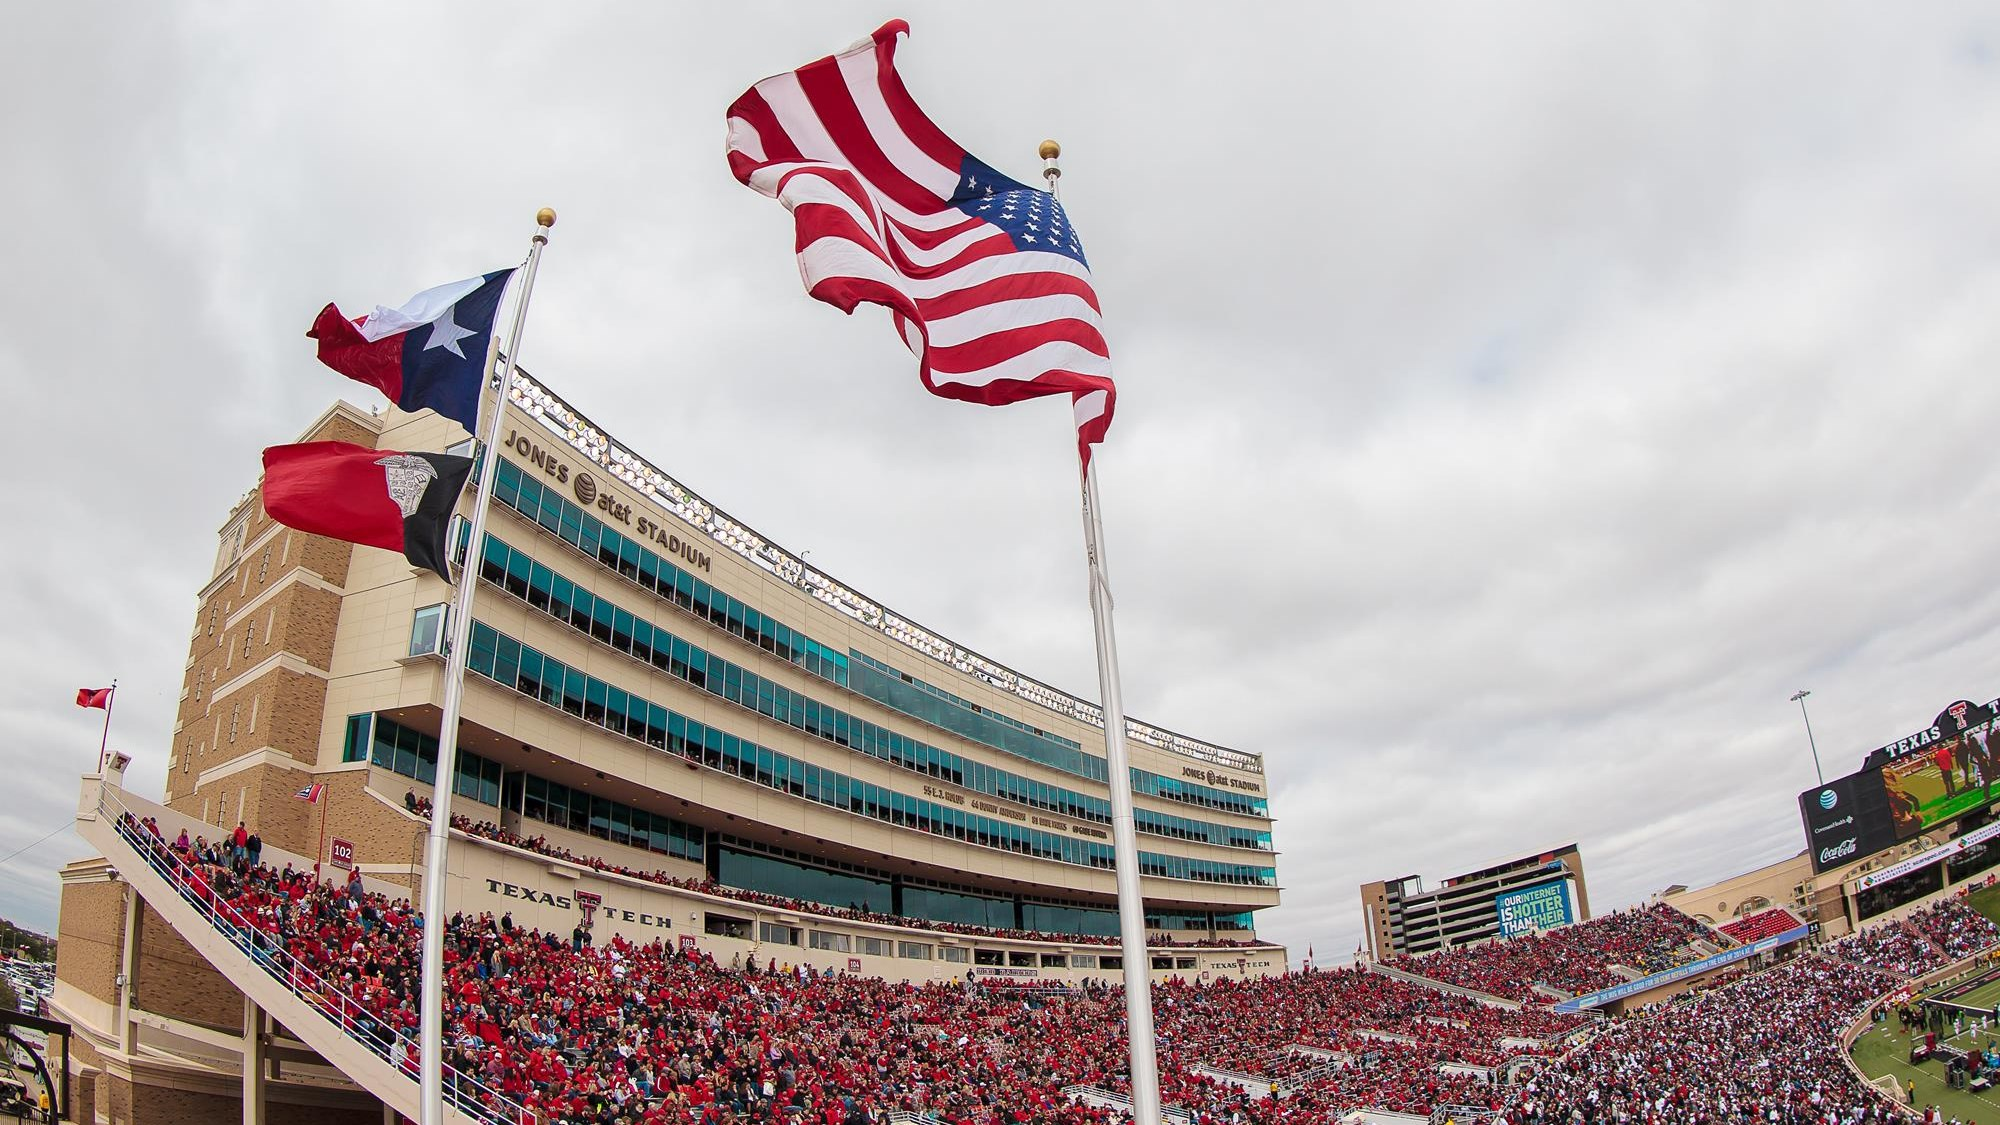 Jones Stadium American flags